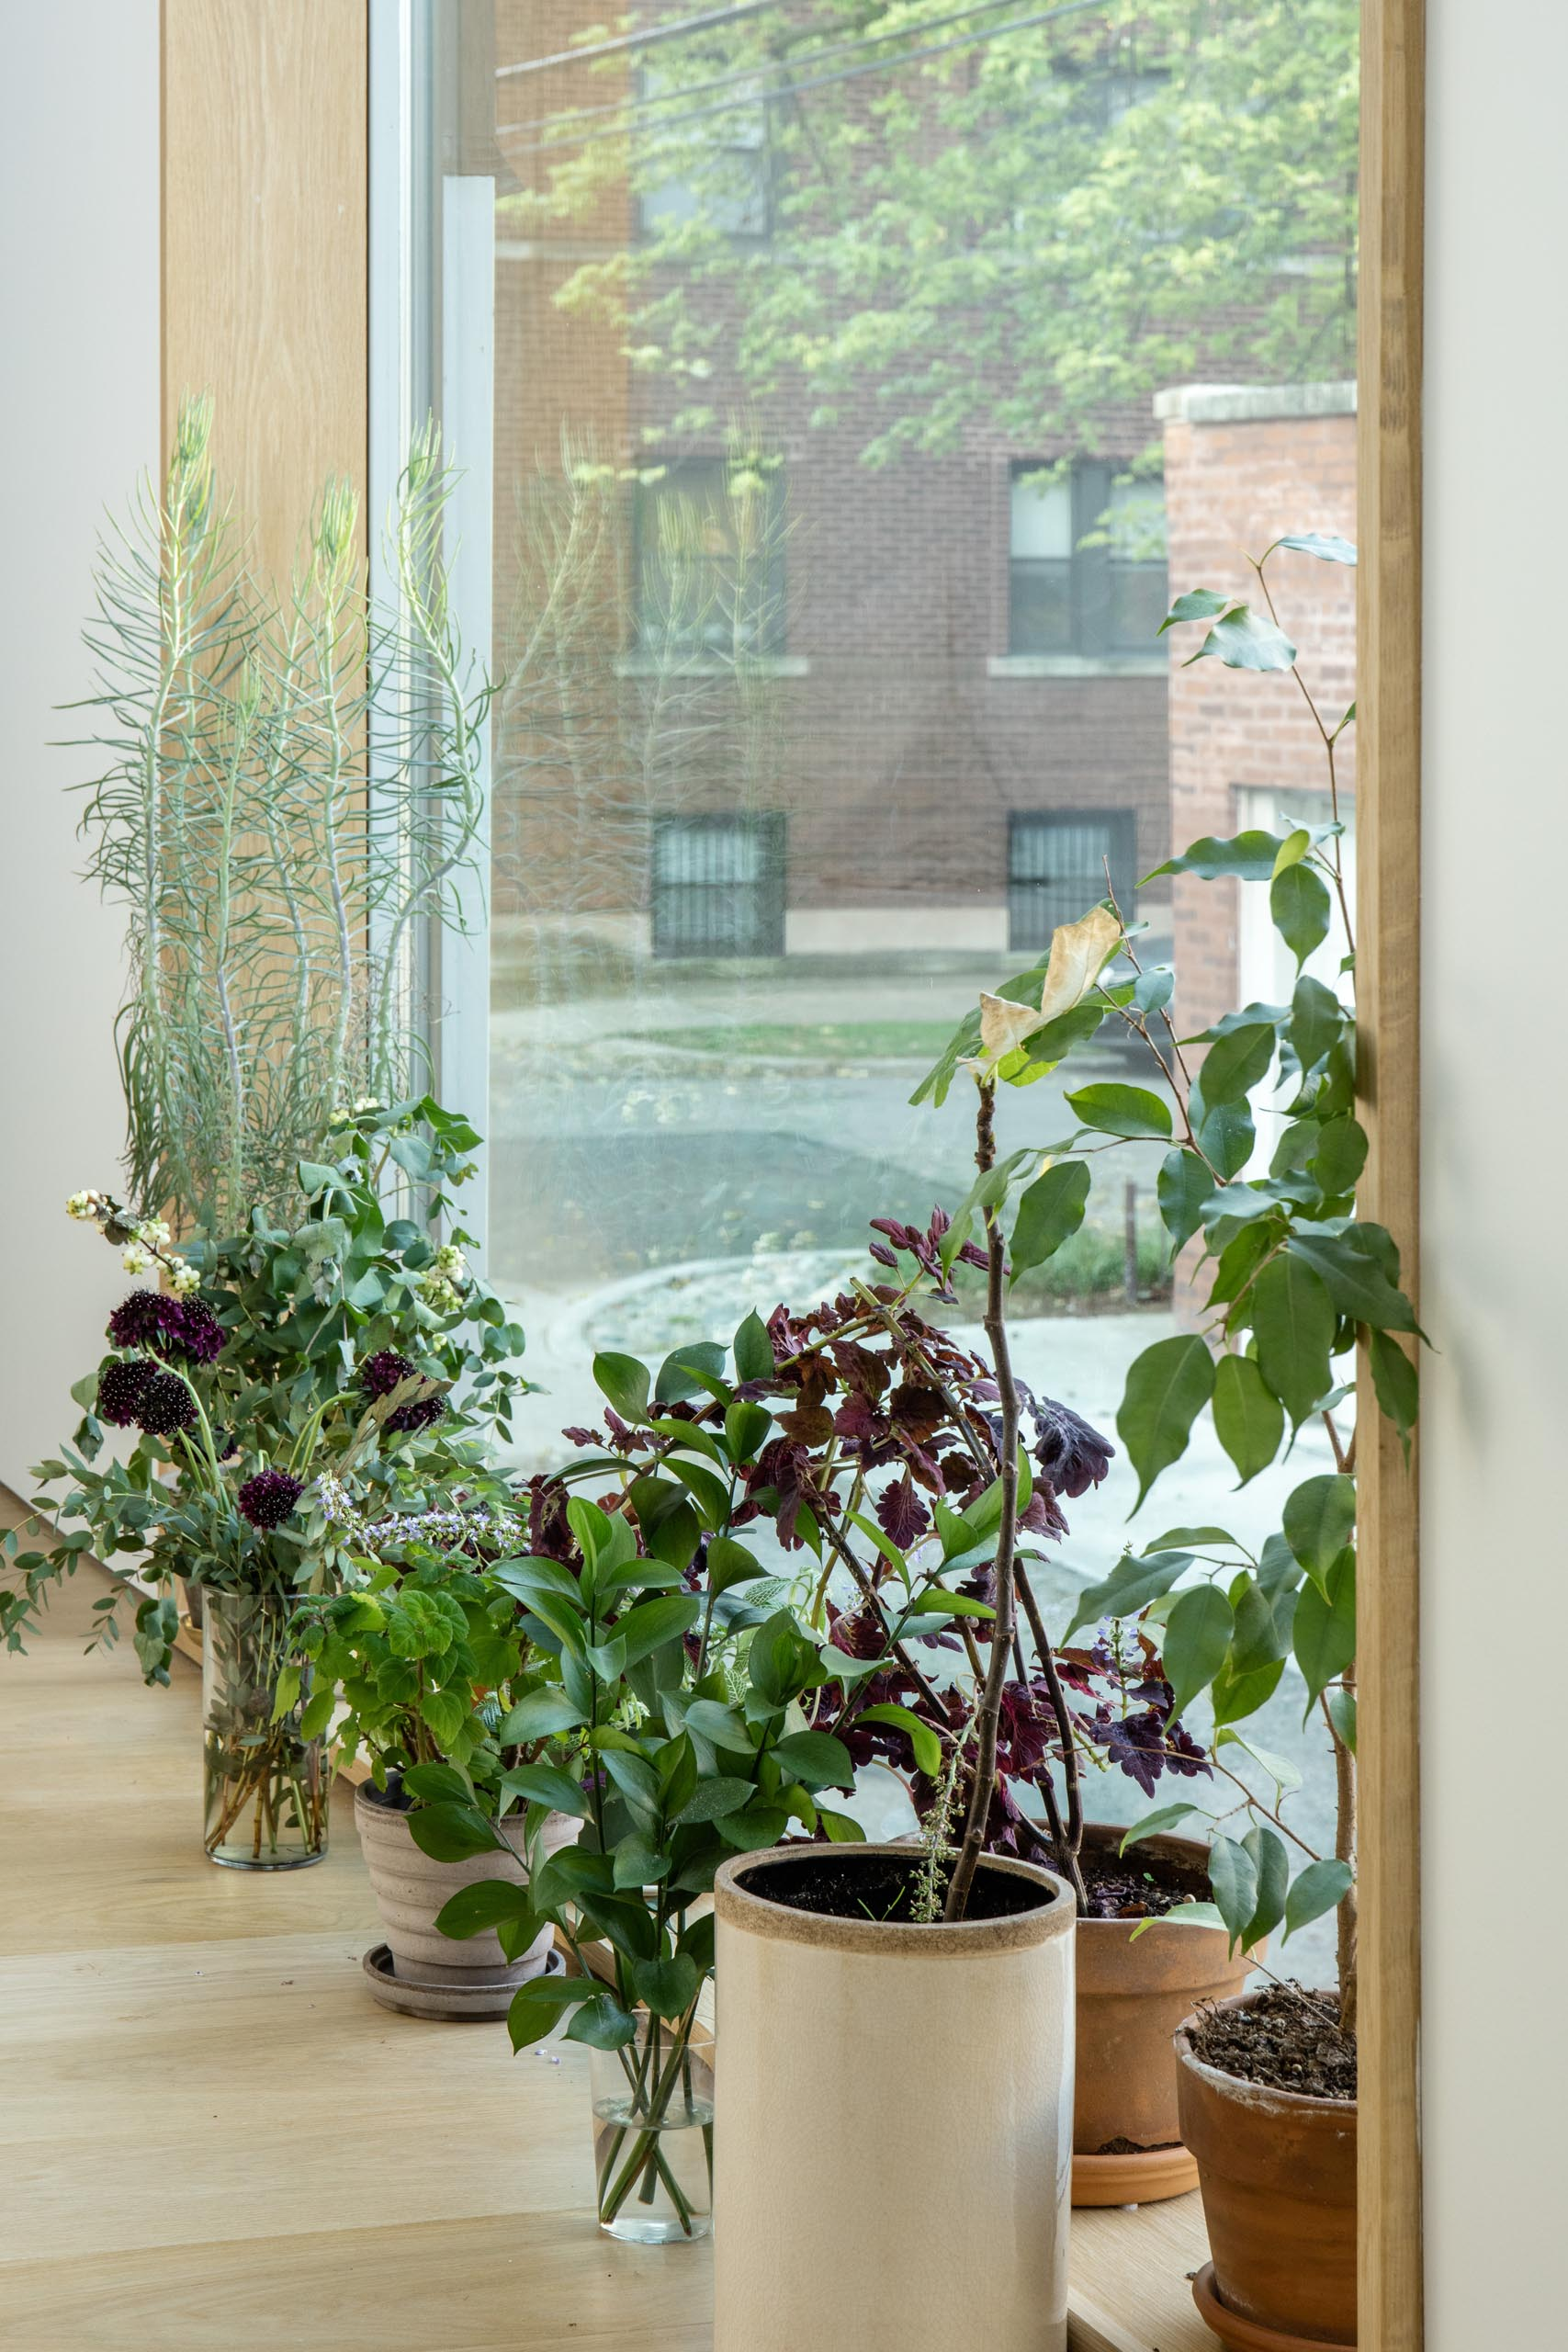 A wood framed window lined with plants.